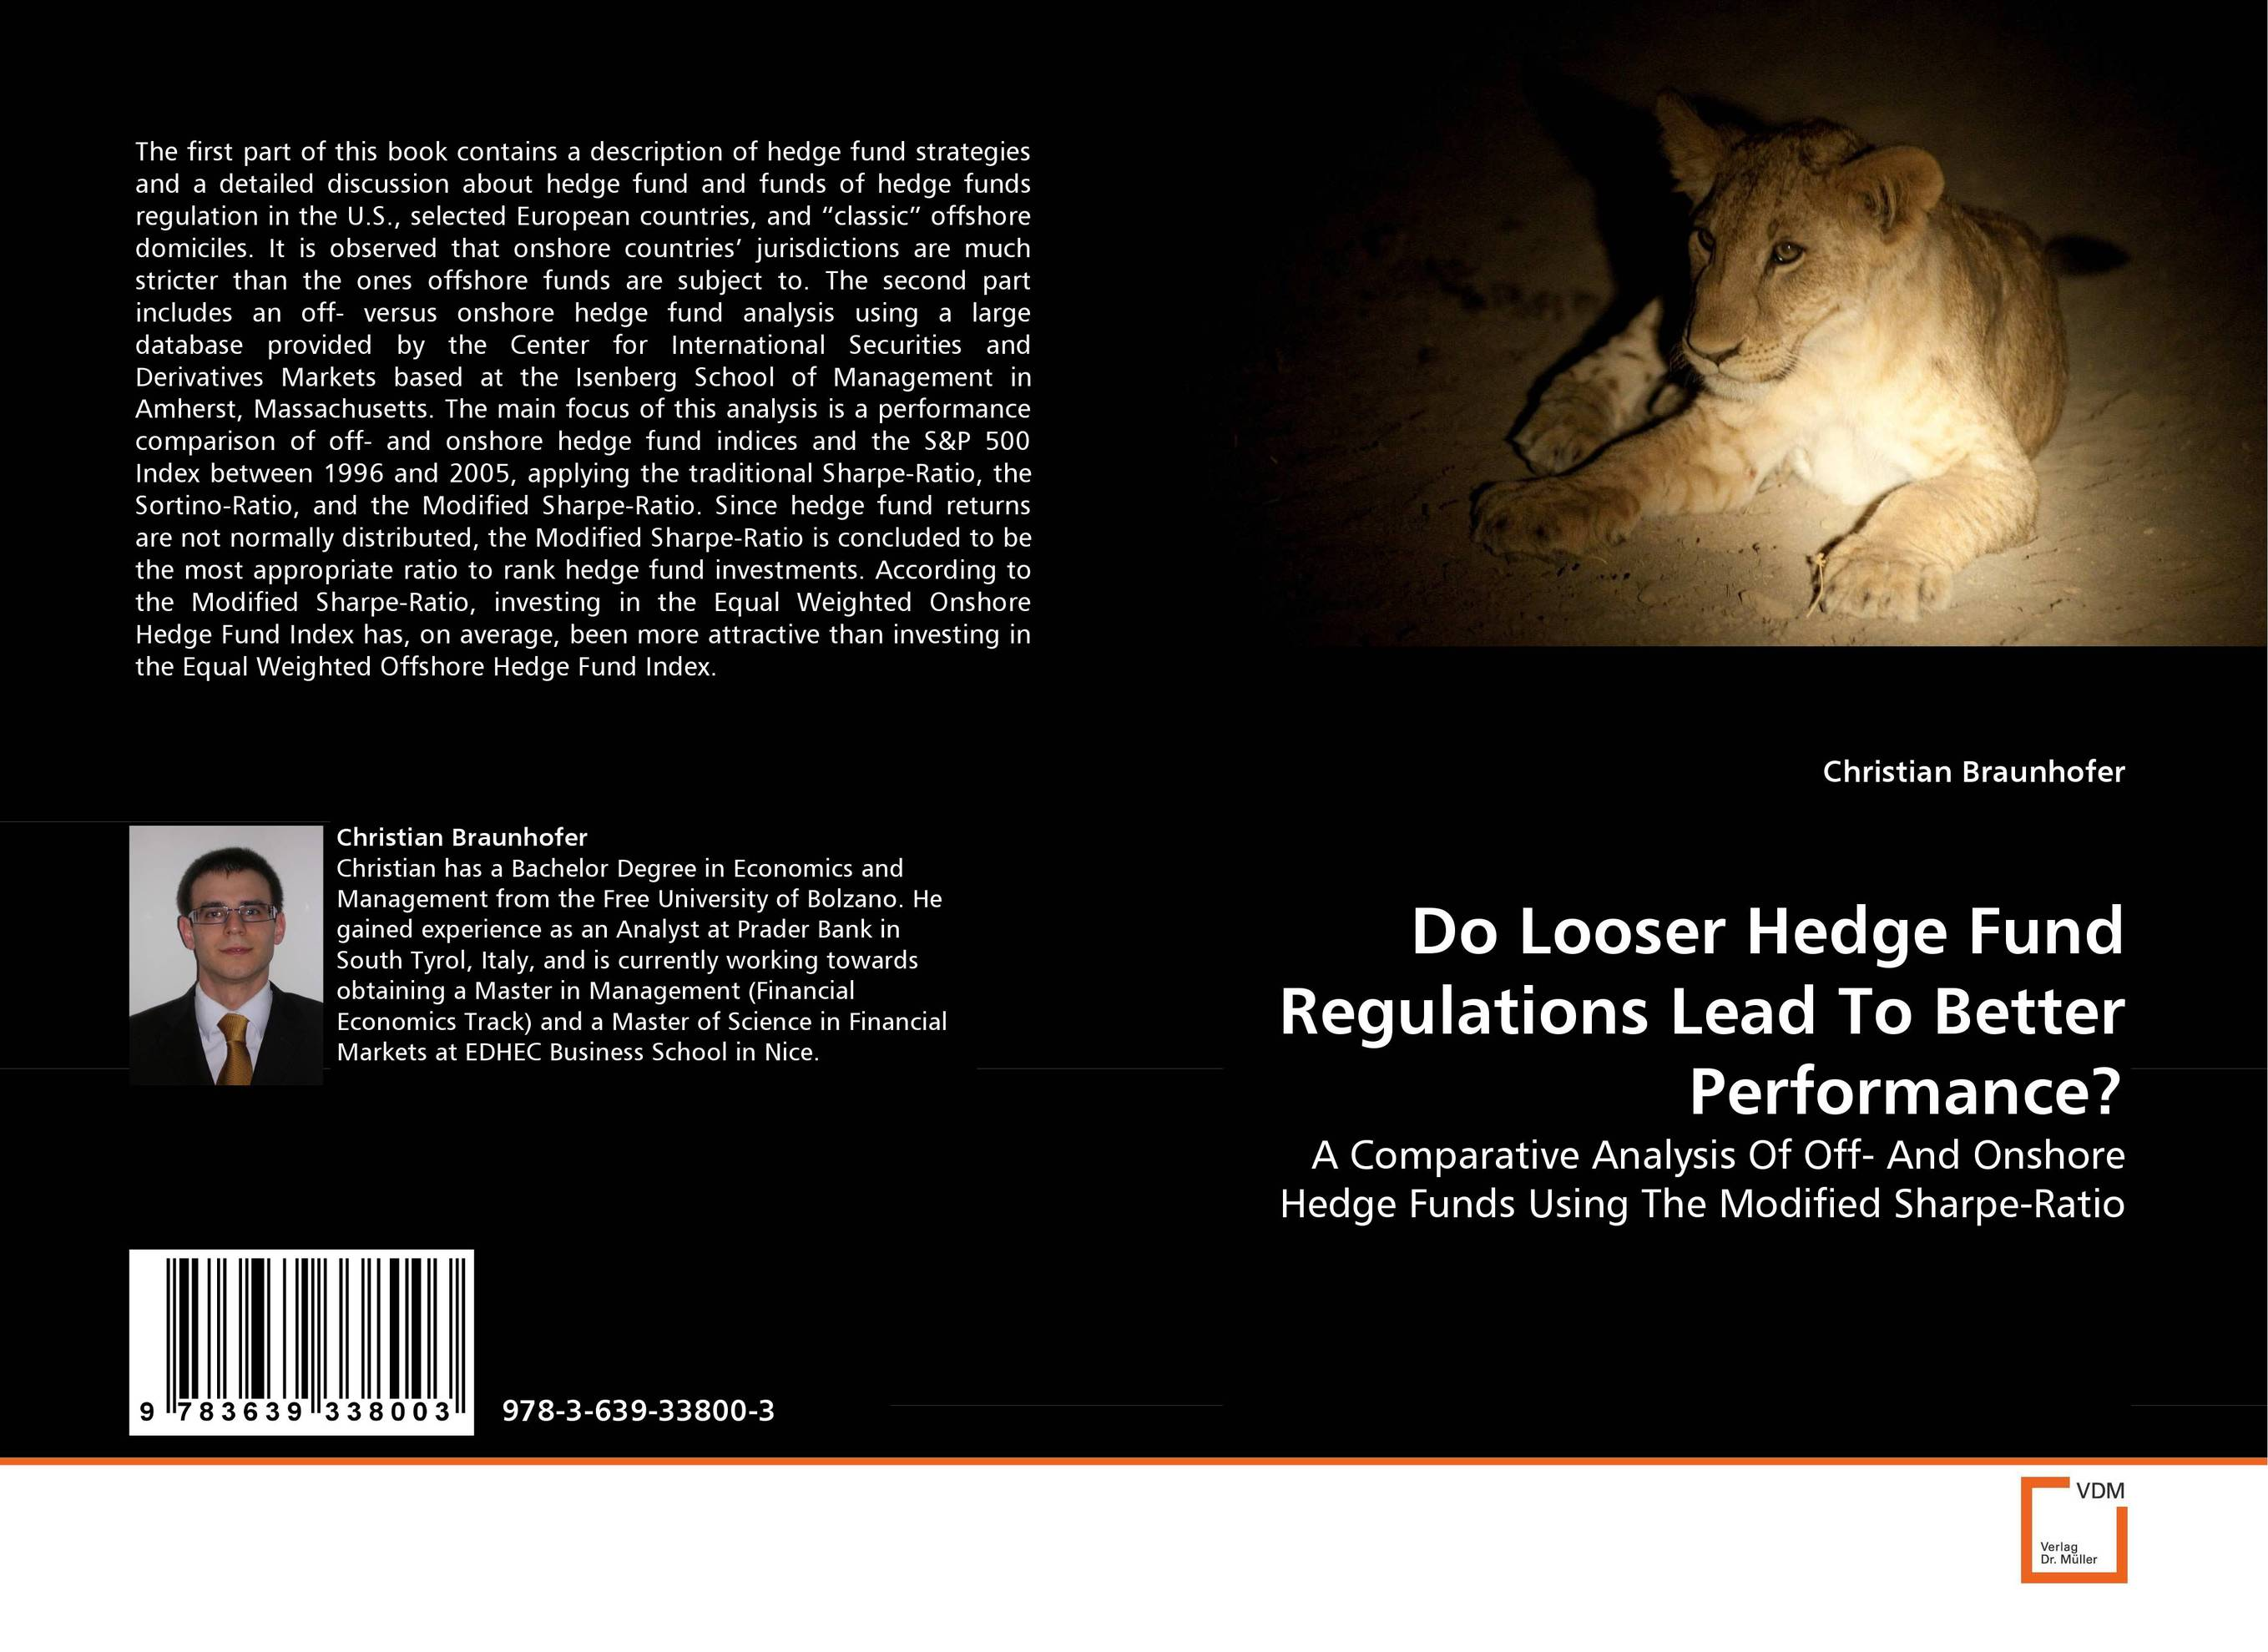 Do Looser Hedge Fund Regulations Lead To Better Performance? jason scharfman a hedge fund compliance risks regulation and management